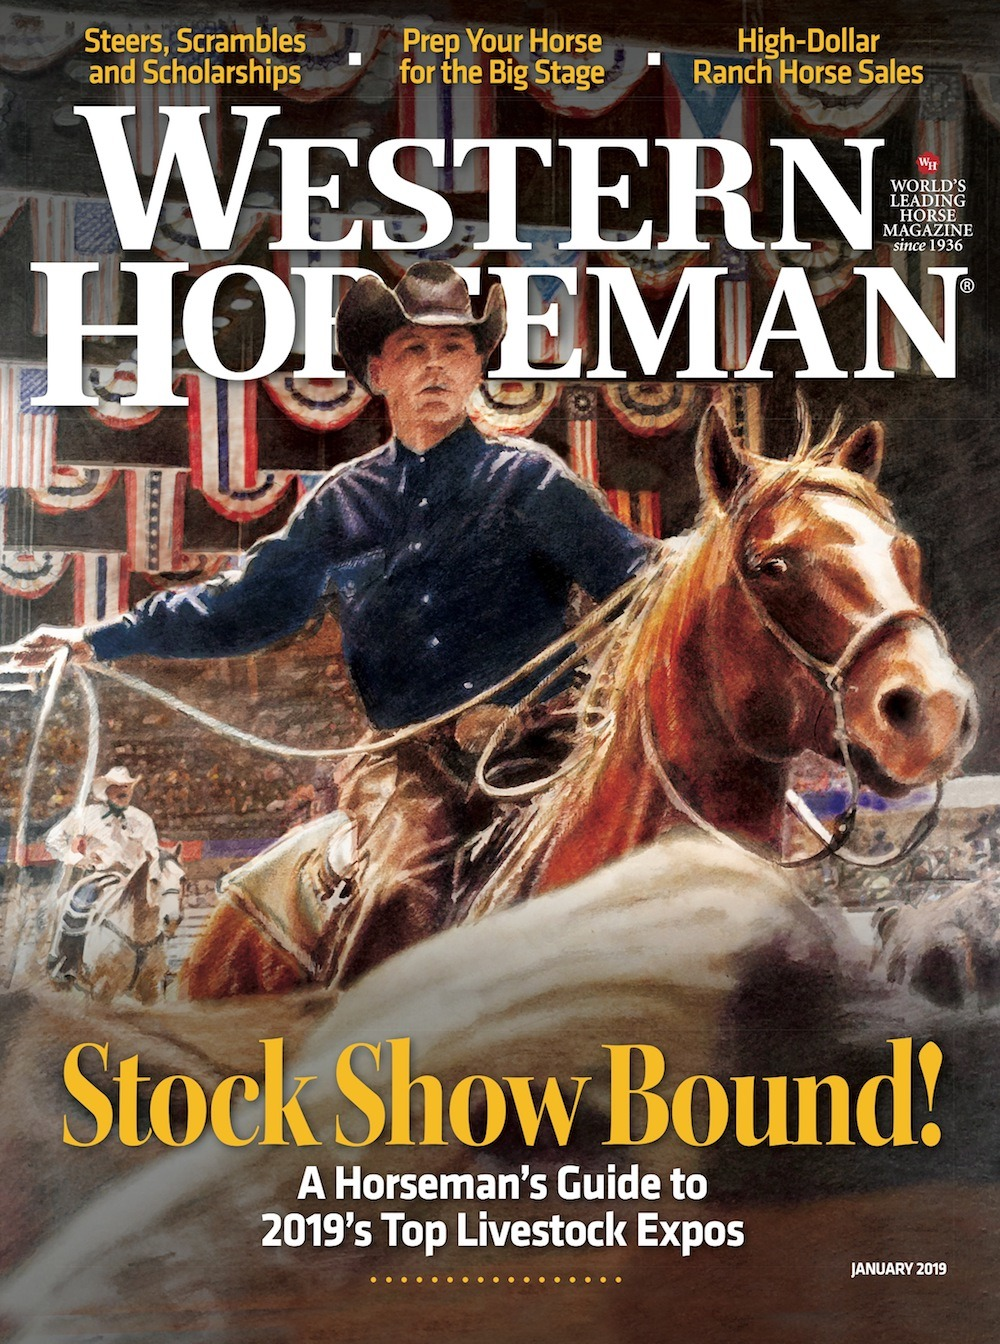 Western Horseman January 2019 issue cover